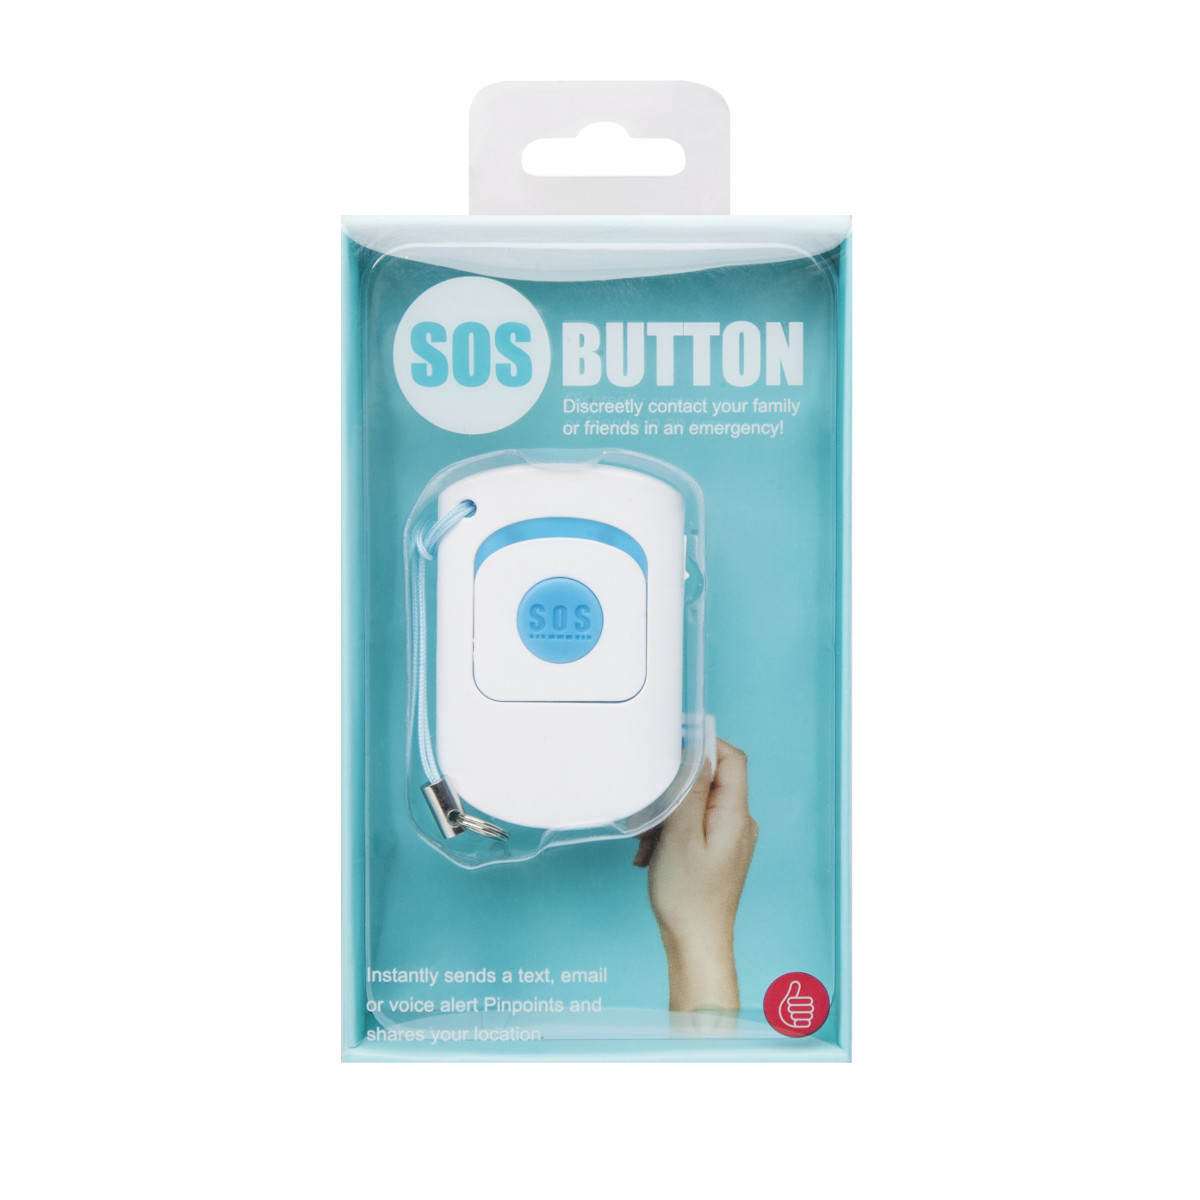 SOS Button - Smartphone Notrufknopf Verpackung